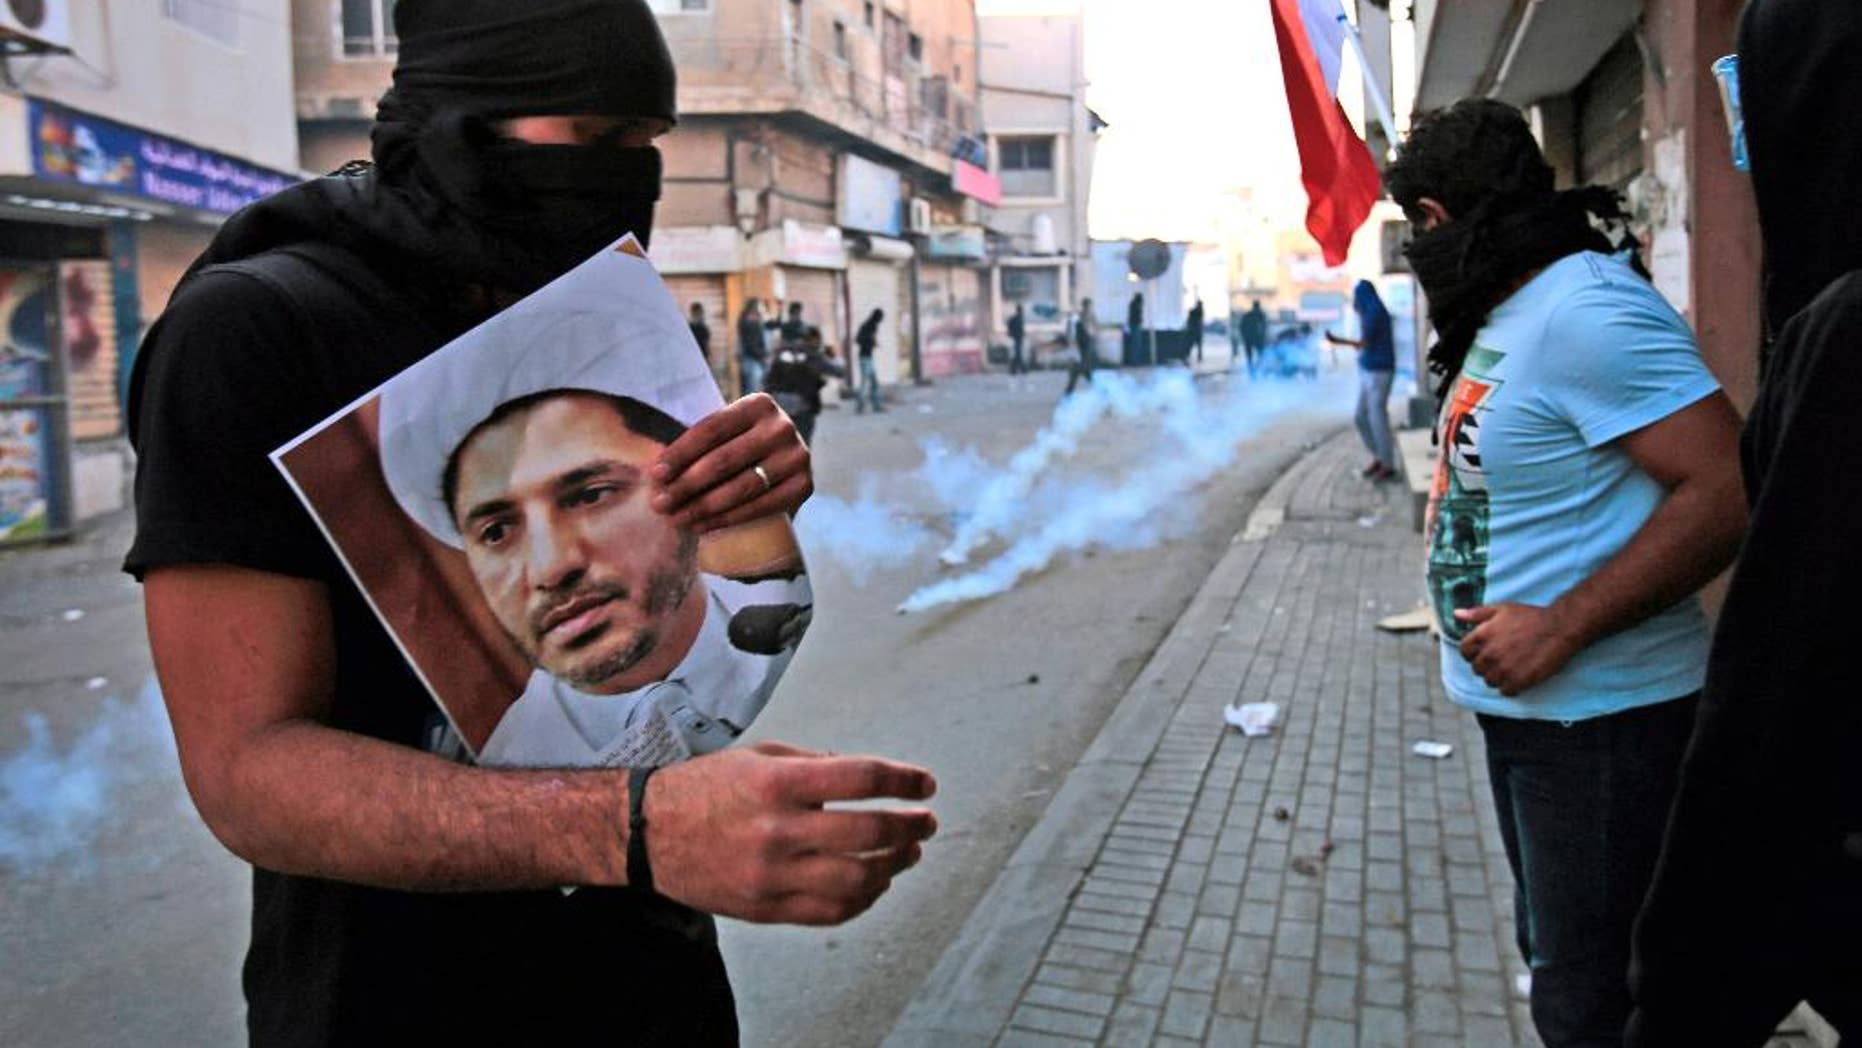 """FILE- In this Jan. 3, 2015 file photo, a masked Bahraini anti-government protester holds a picture of jailed Shiite cleric Sheik Ali Salman, the head of the opposition al-Wefaq political association, as riot police fire tear gas canisters during clashes in Bilad Al Qadeem, Bahrain. On Tuesday, June, 14, 2016, Bahrain said it has suspended all activities by Al-Wefaq, the largest Shiite opposition political group, and frozen its assets amid a widening crackdown on dissent, five years after the country's Arab Spring protests. A statement from the Justice and Islamic Affairs Ministry carried on the state-run Bahrain News Agency said a court made the decision to suspend Al-Wefaq to """"safeguard the security of the kingdom."""" (AP Photo/Hasan Jamali, File)"""